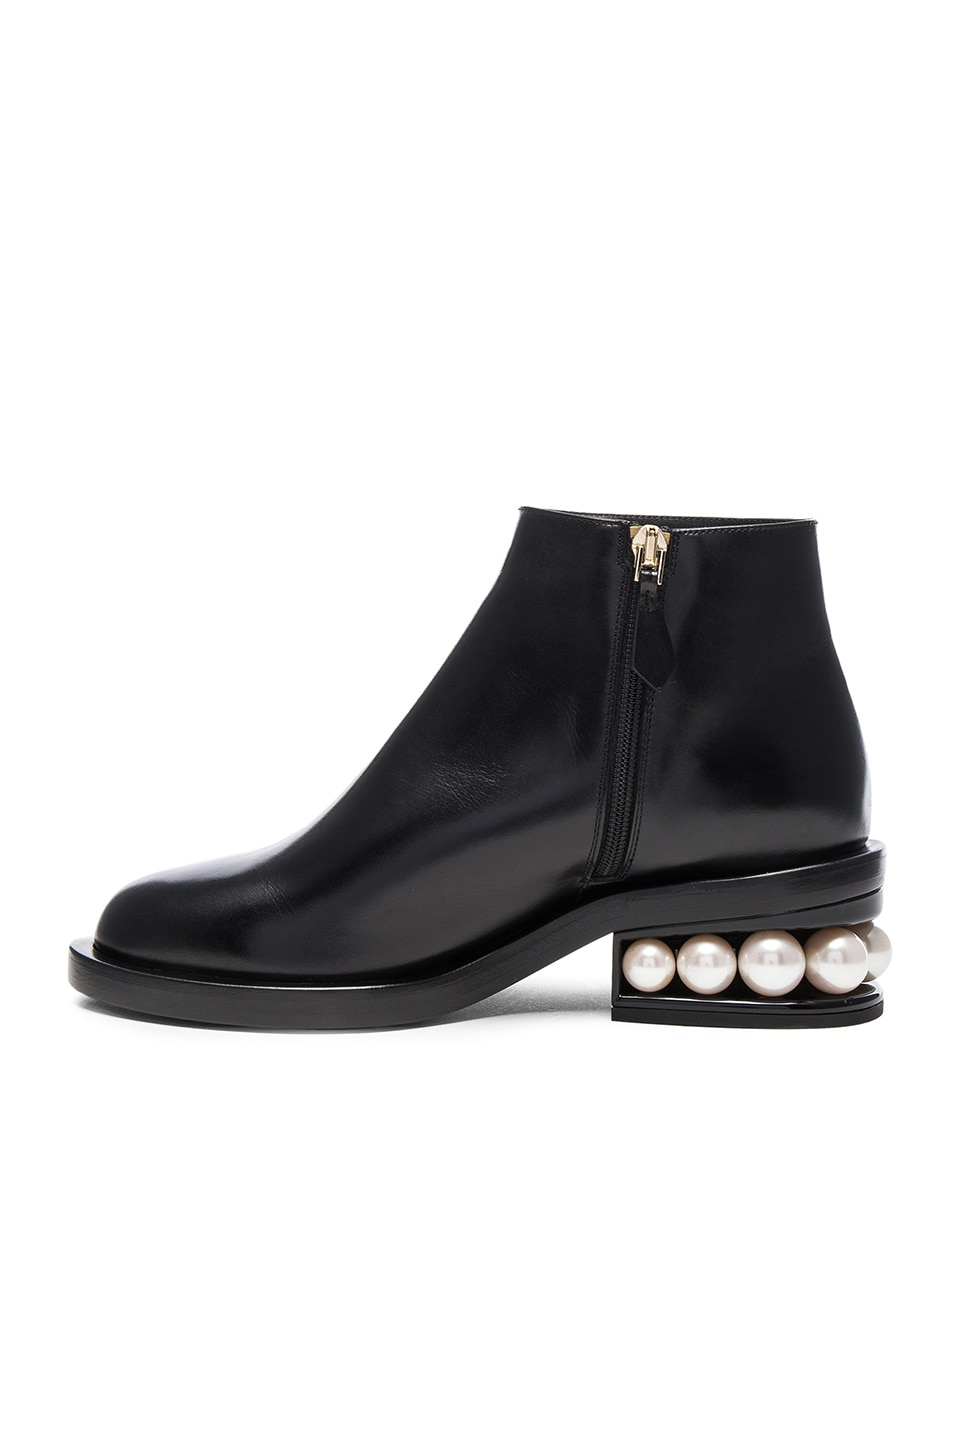 Image 5 of Nicholas Kirkwood Leather Casati Pearl Boots in Black